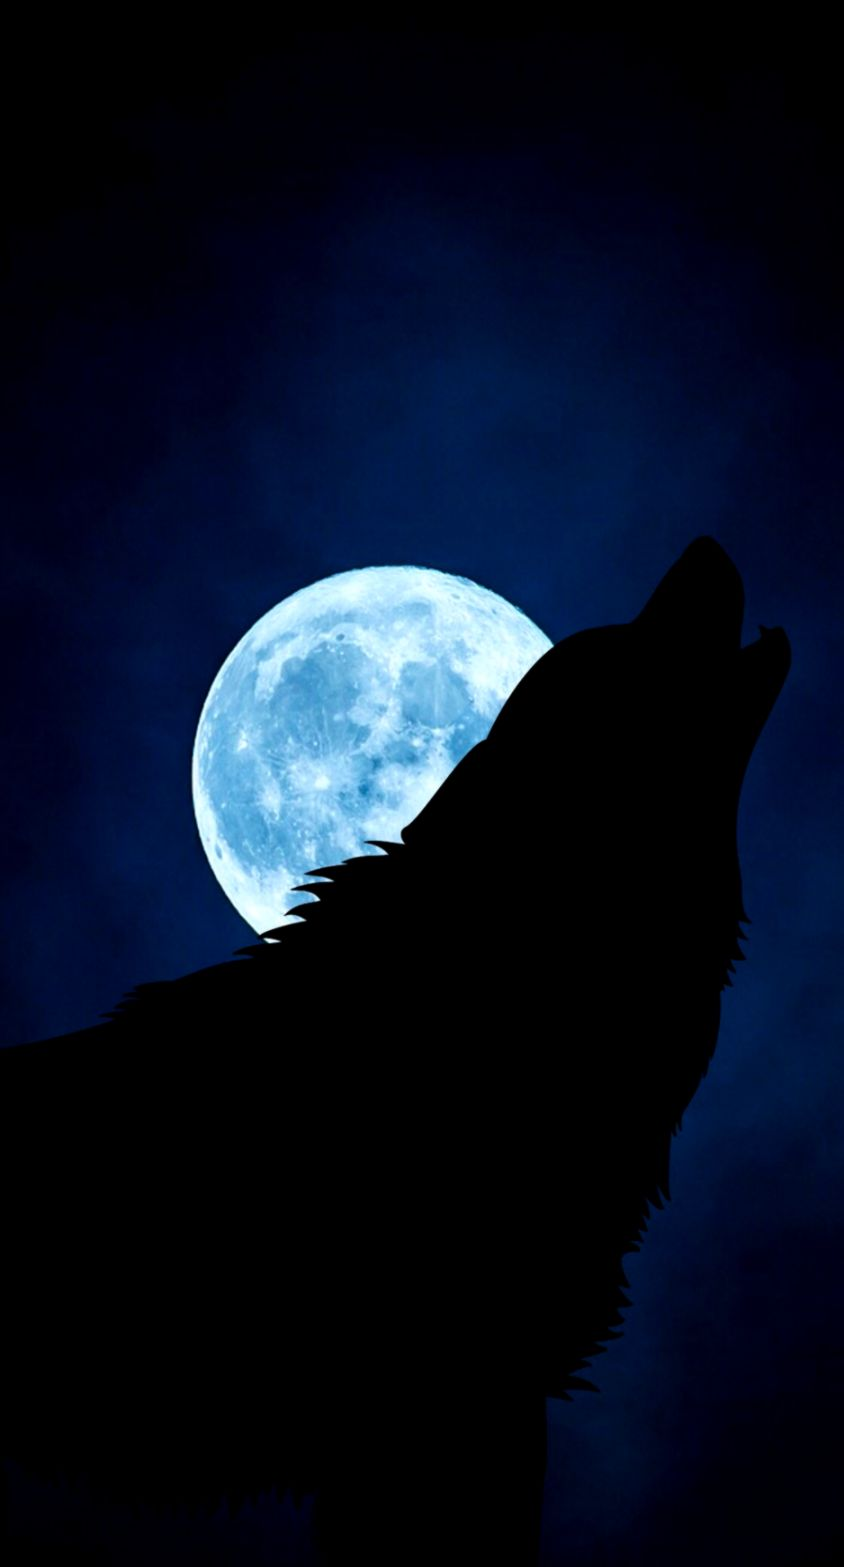 Download Wallpaper Wolf Silhouette Moon Night Iphone Wolf And Moon 844x1567 Wallpaper Teahub Io